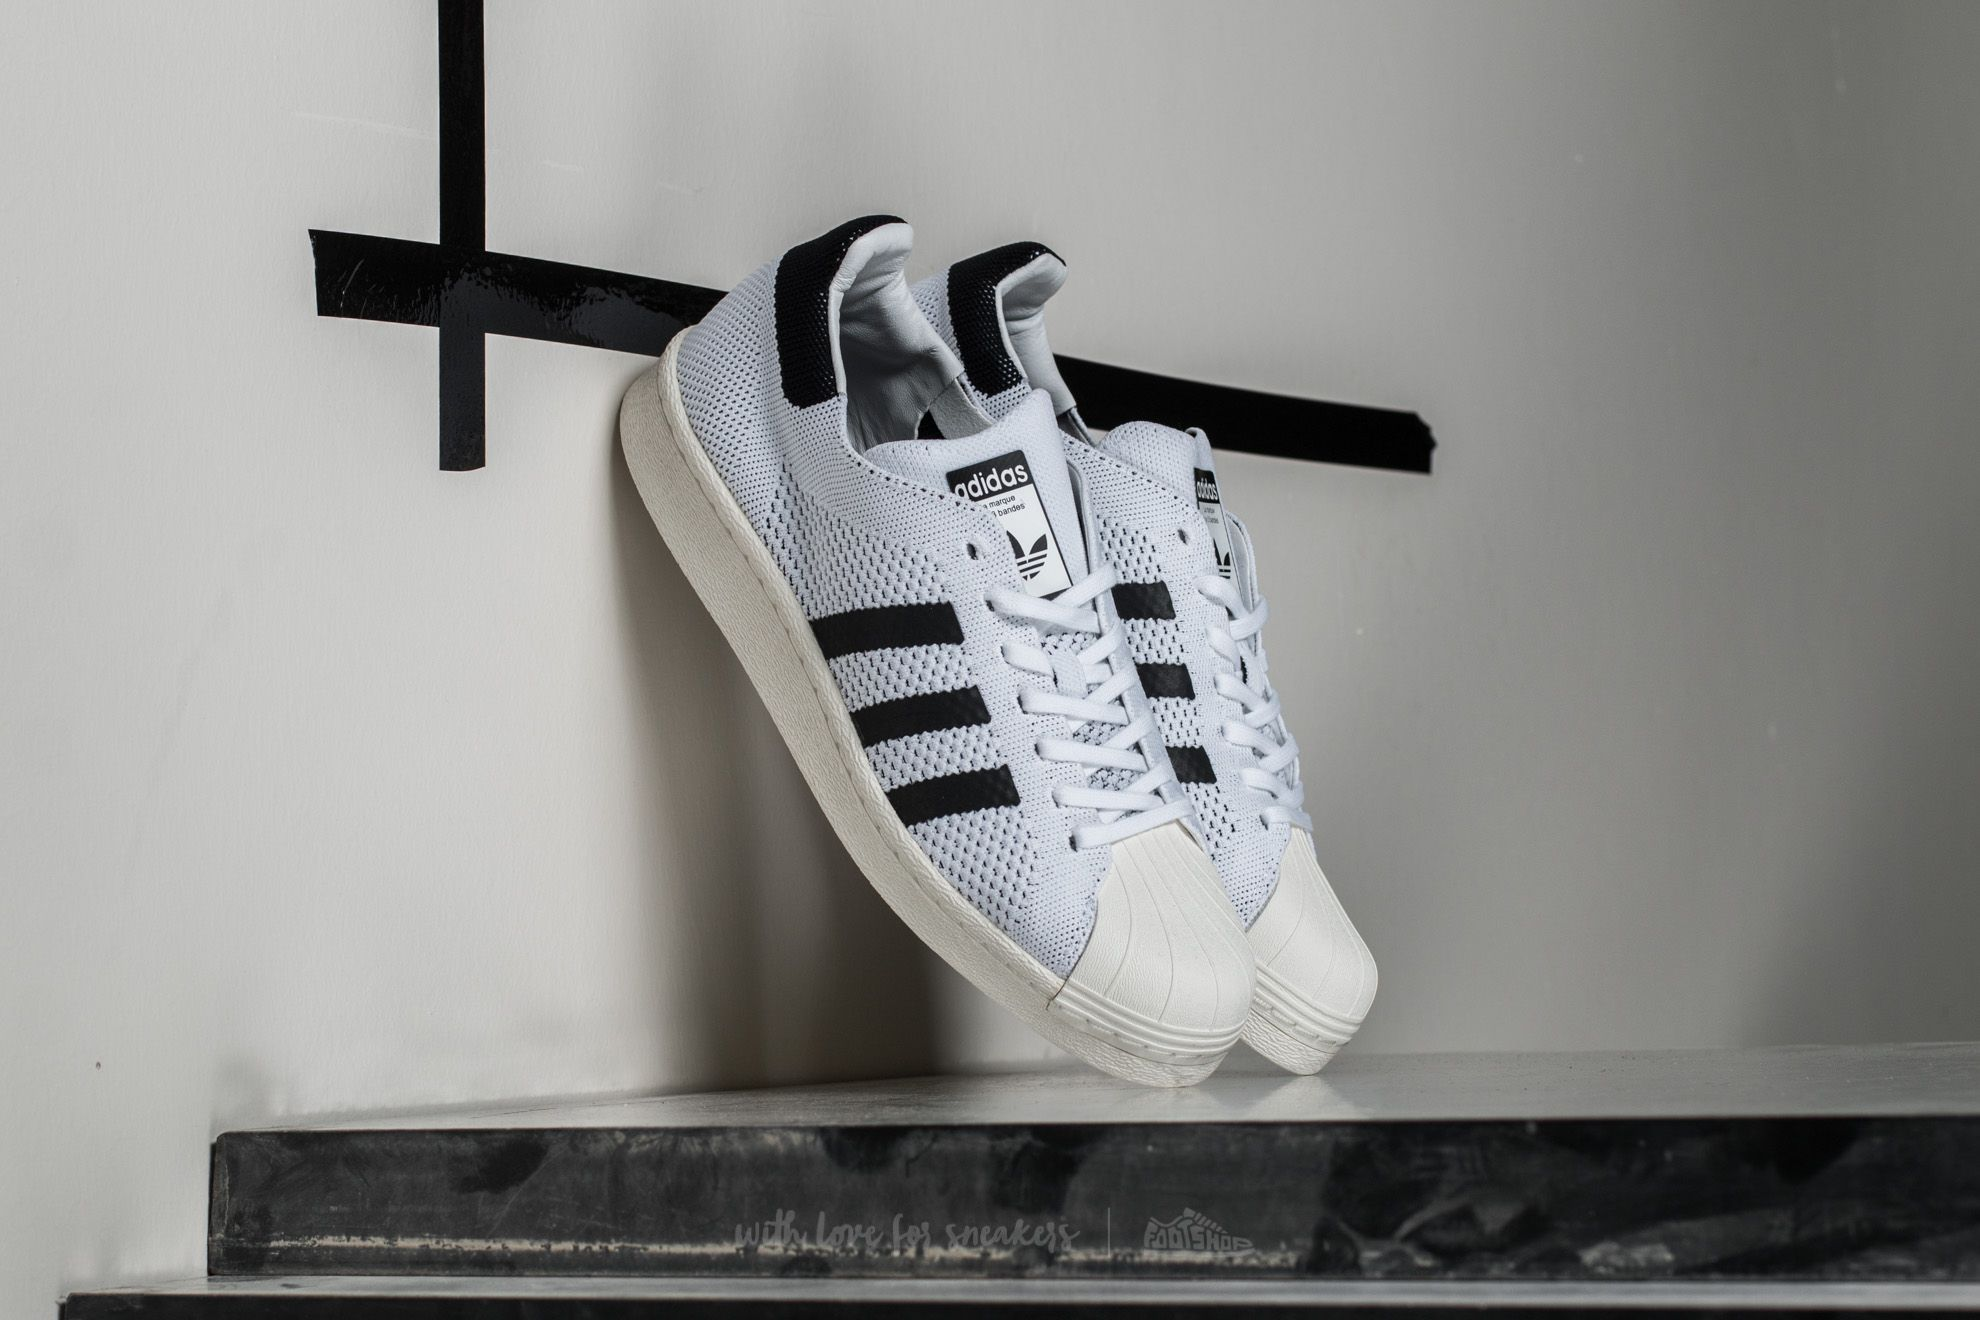 Adidas Superstar Boost Pk Ftw White/ Core Black/ Off White